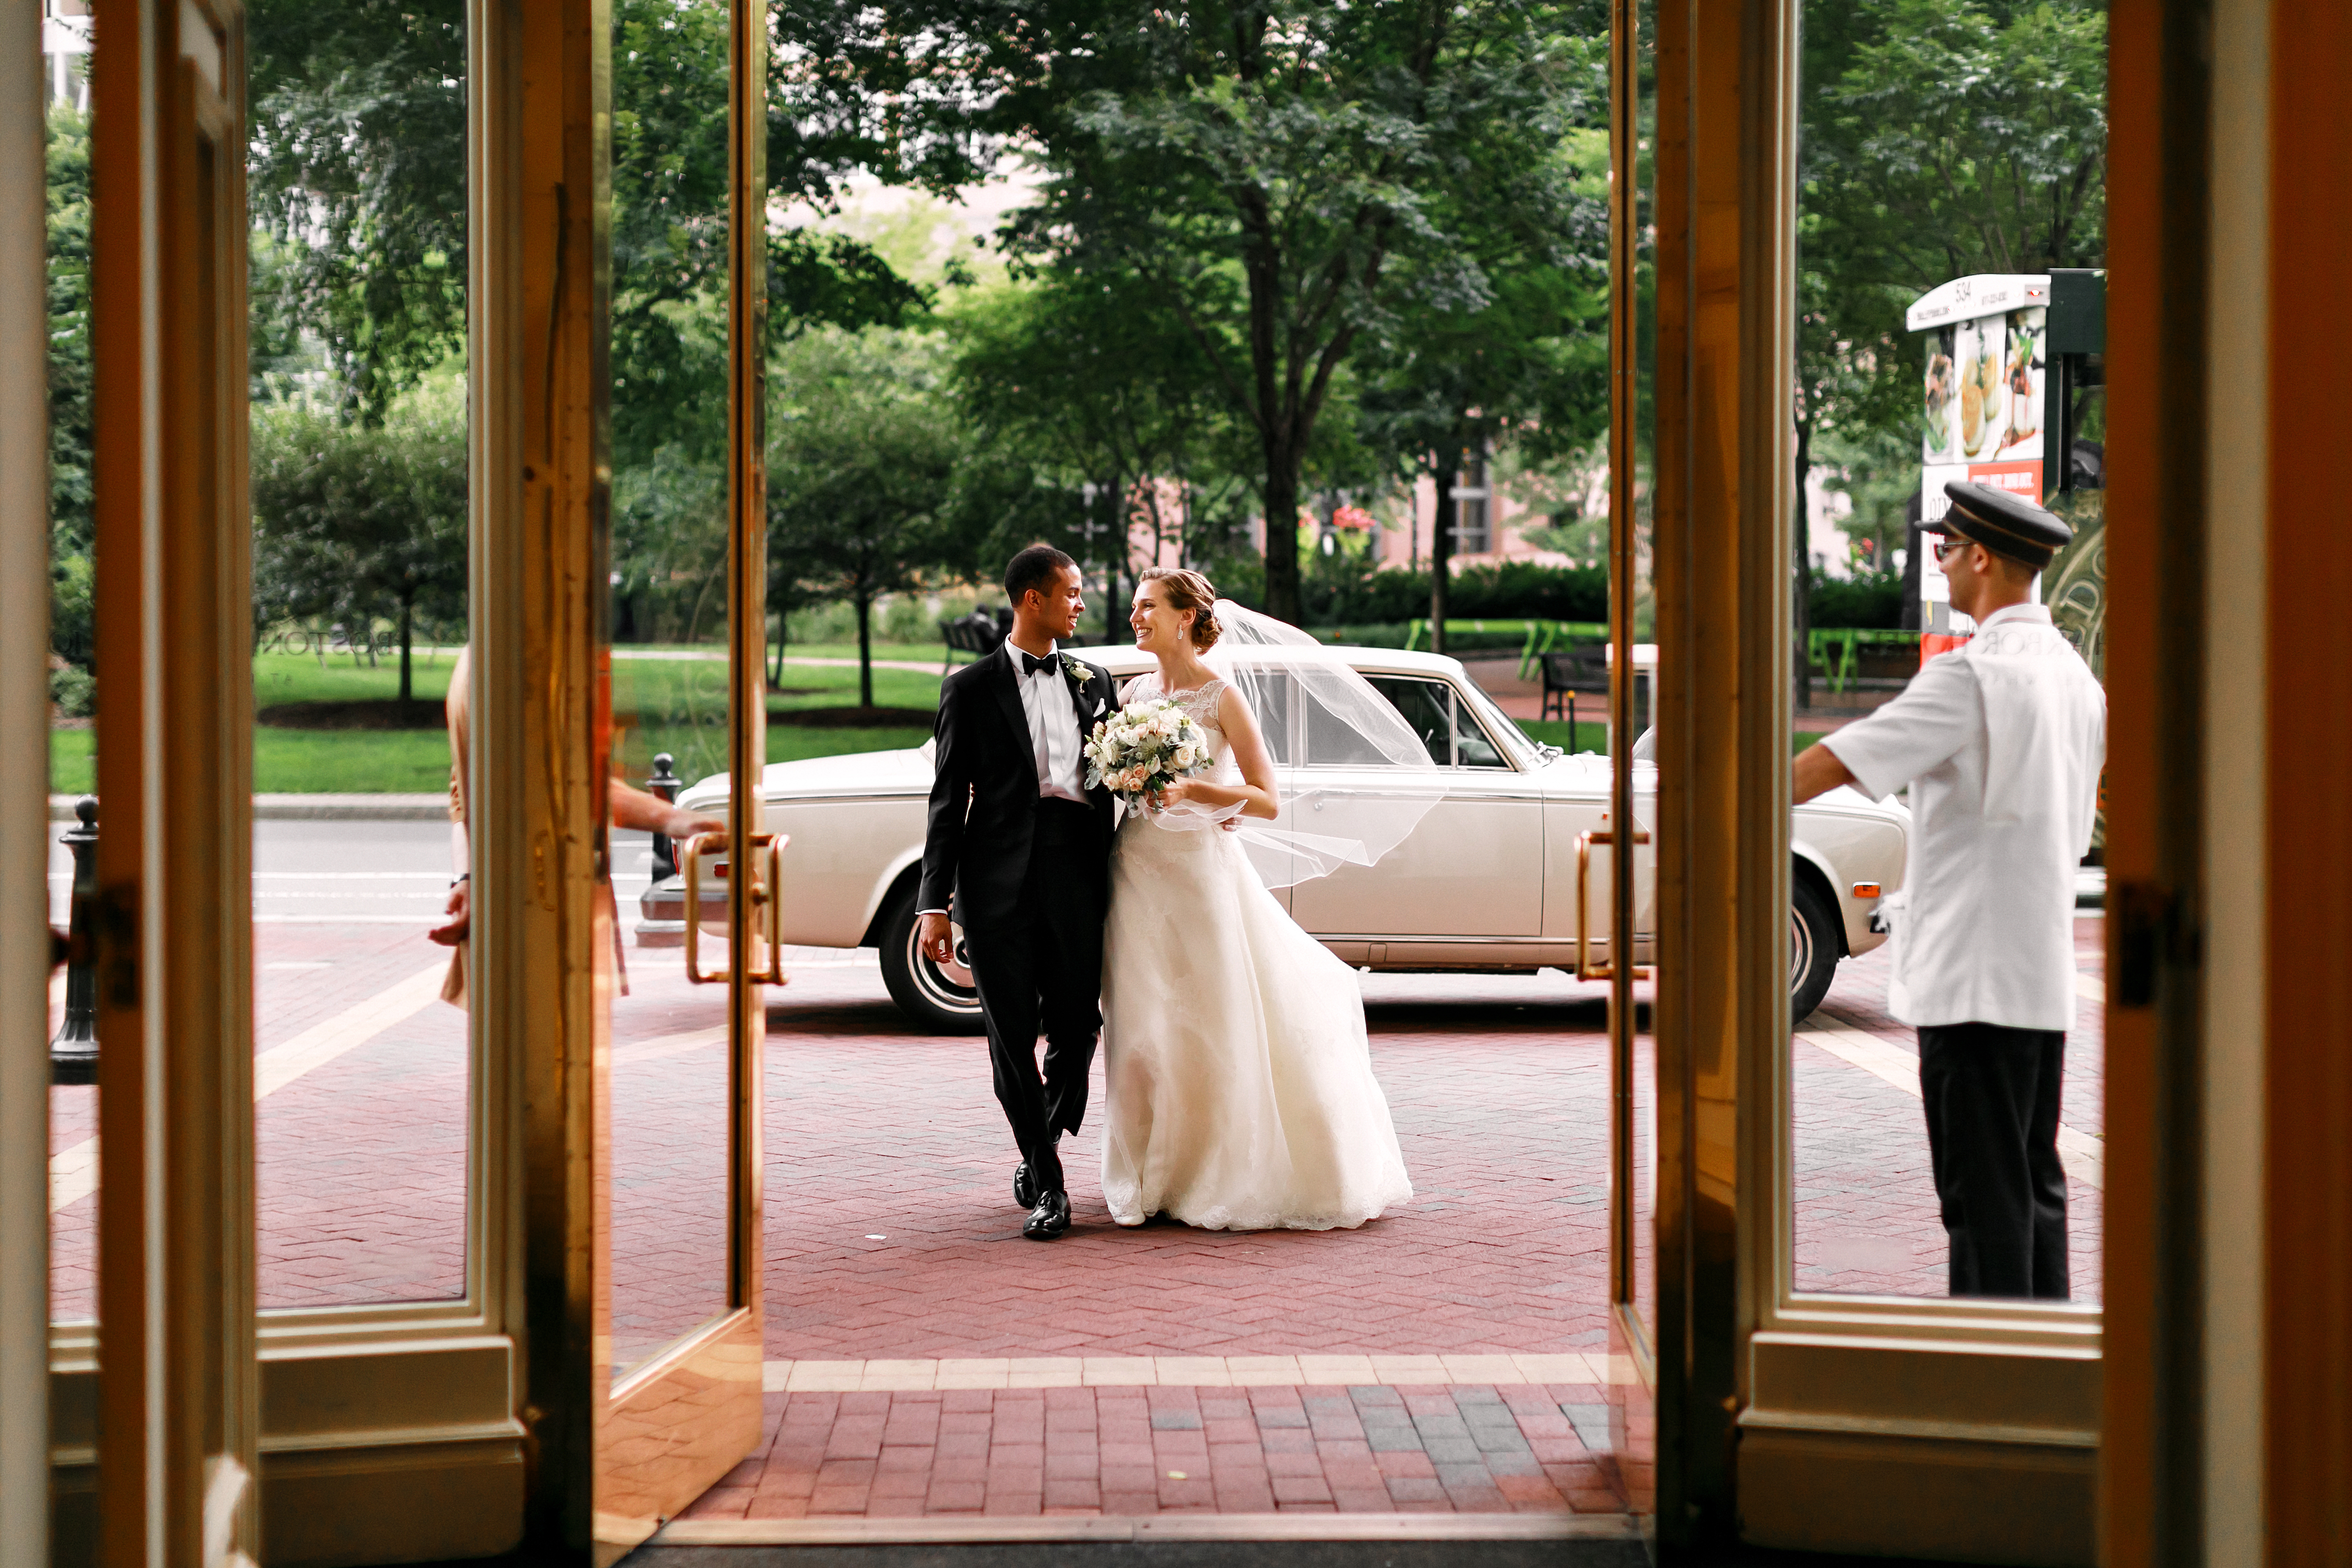 Newlyweds walking from their car to a grand hotel